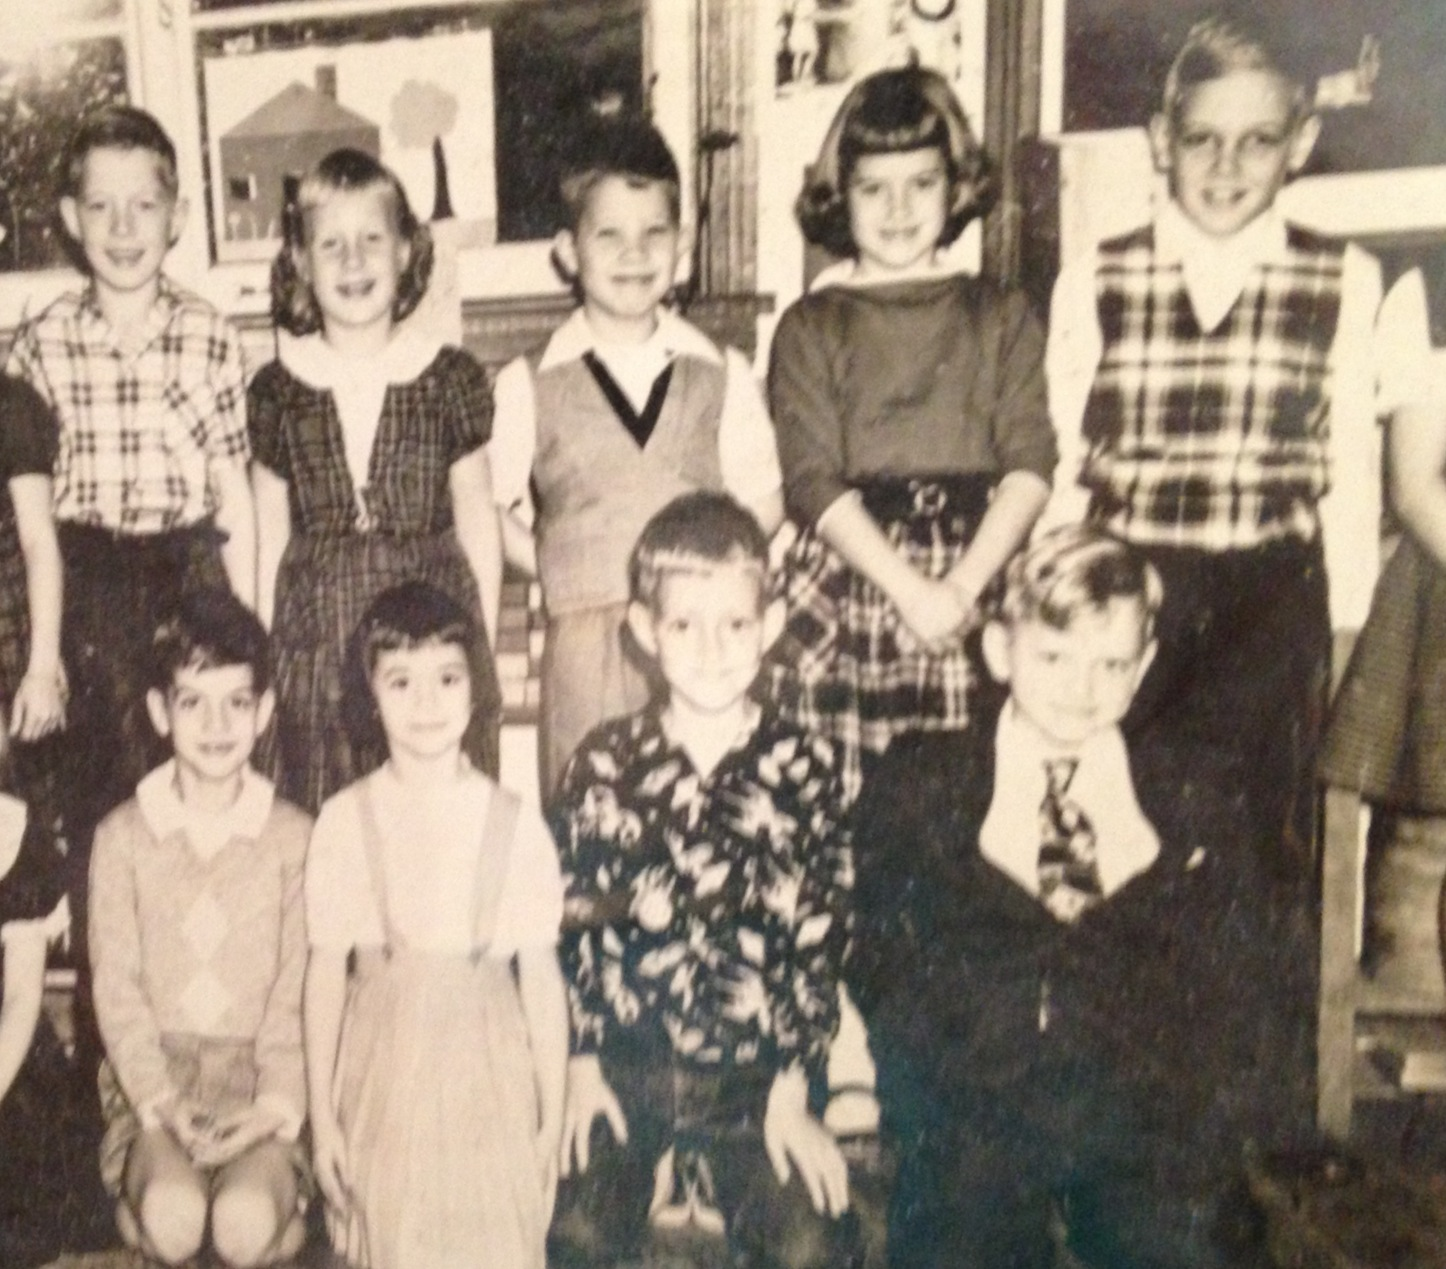 The author (top right) and Little Ricky (bottom left) in second grade